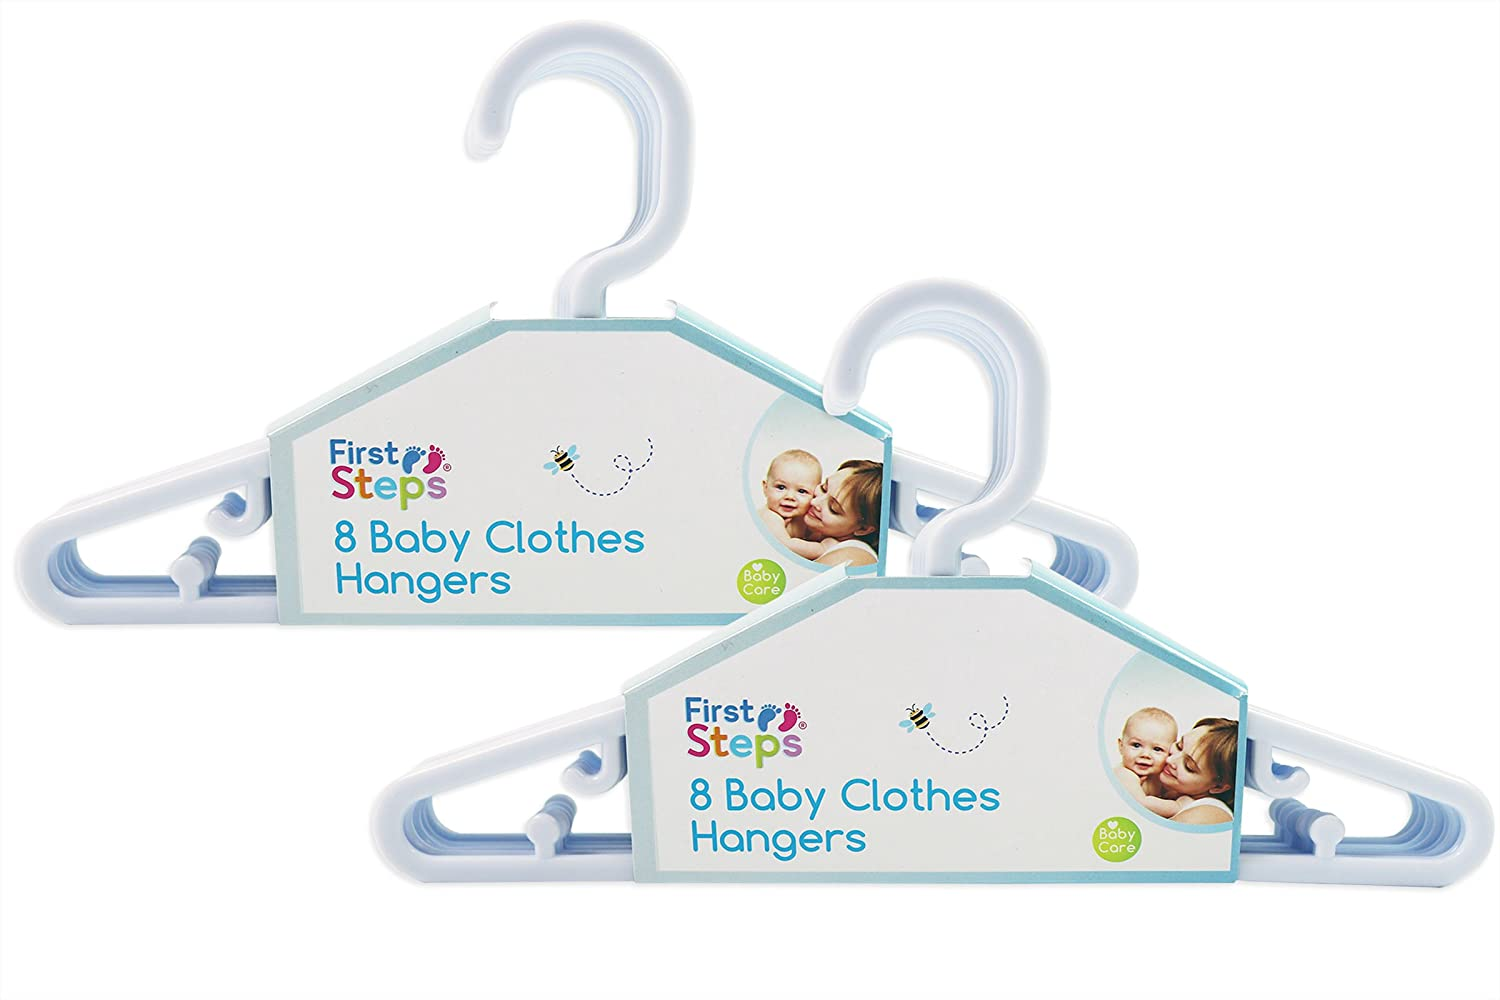 Baby Coat Hangers Small Clothes Hangers First Steps Pack of 16 White RSW